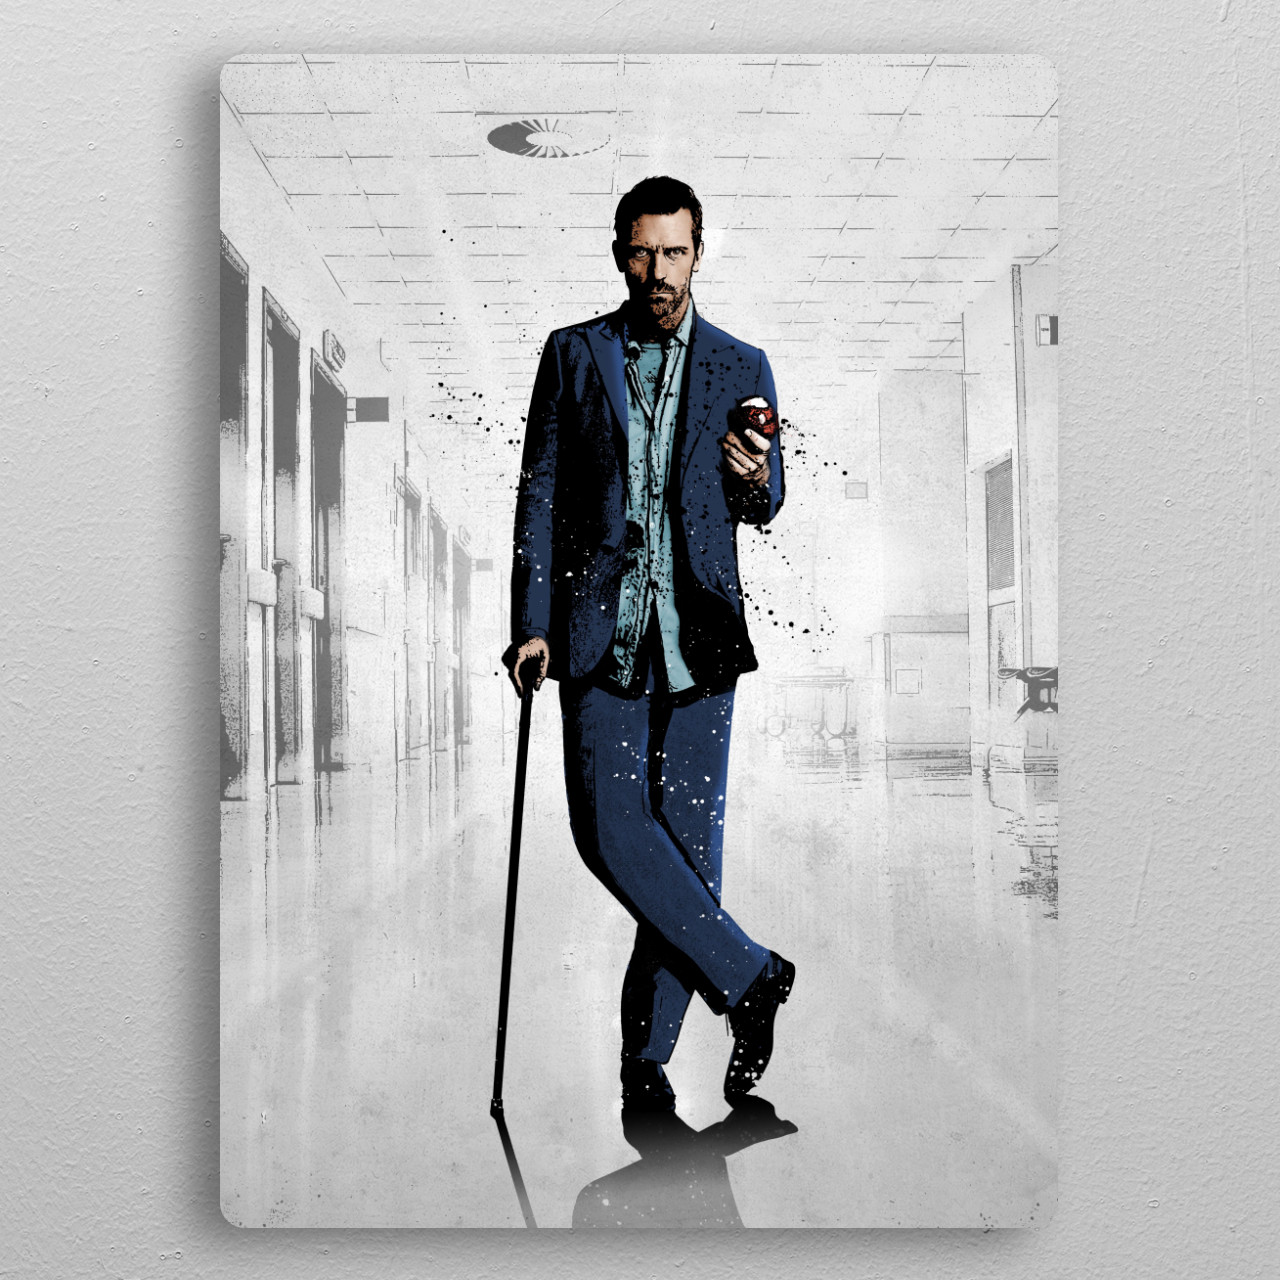 Gregory pocket-size metal print from Black box